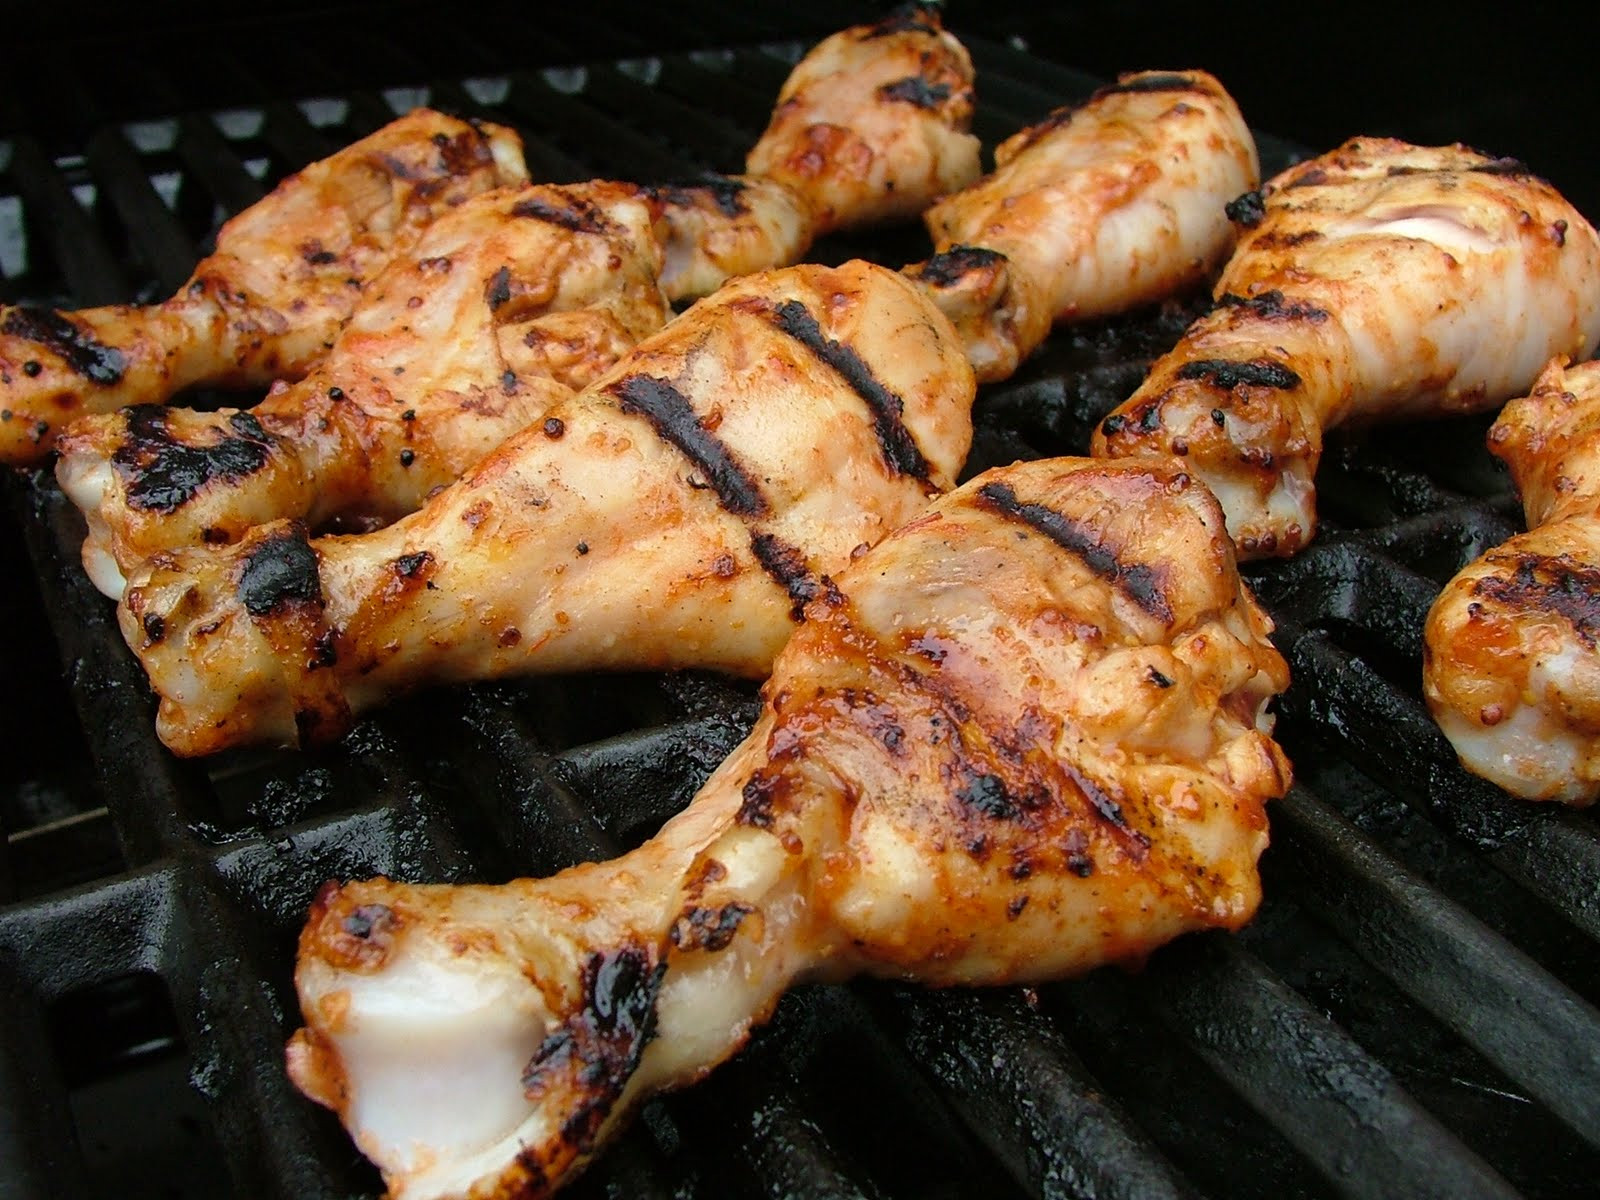 Chicken Legs On The Grill  The Cook a Palooza Experience Hickory Flavored Grilled